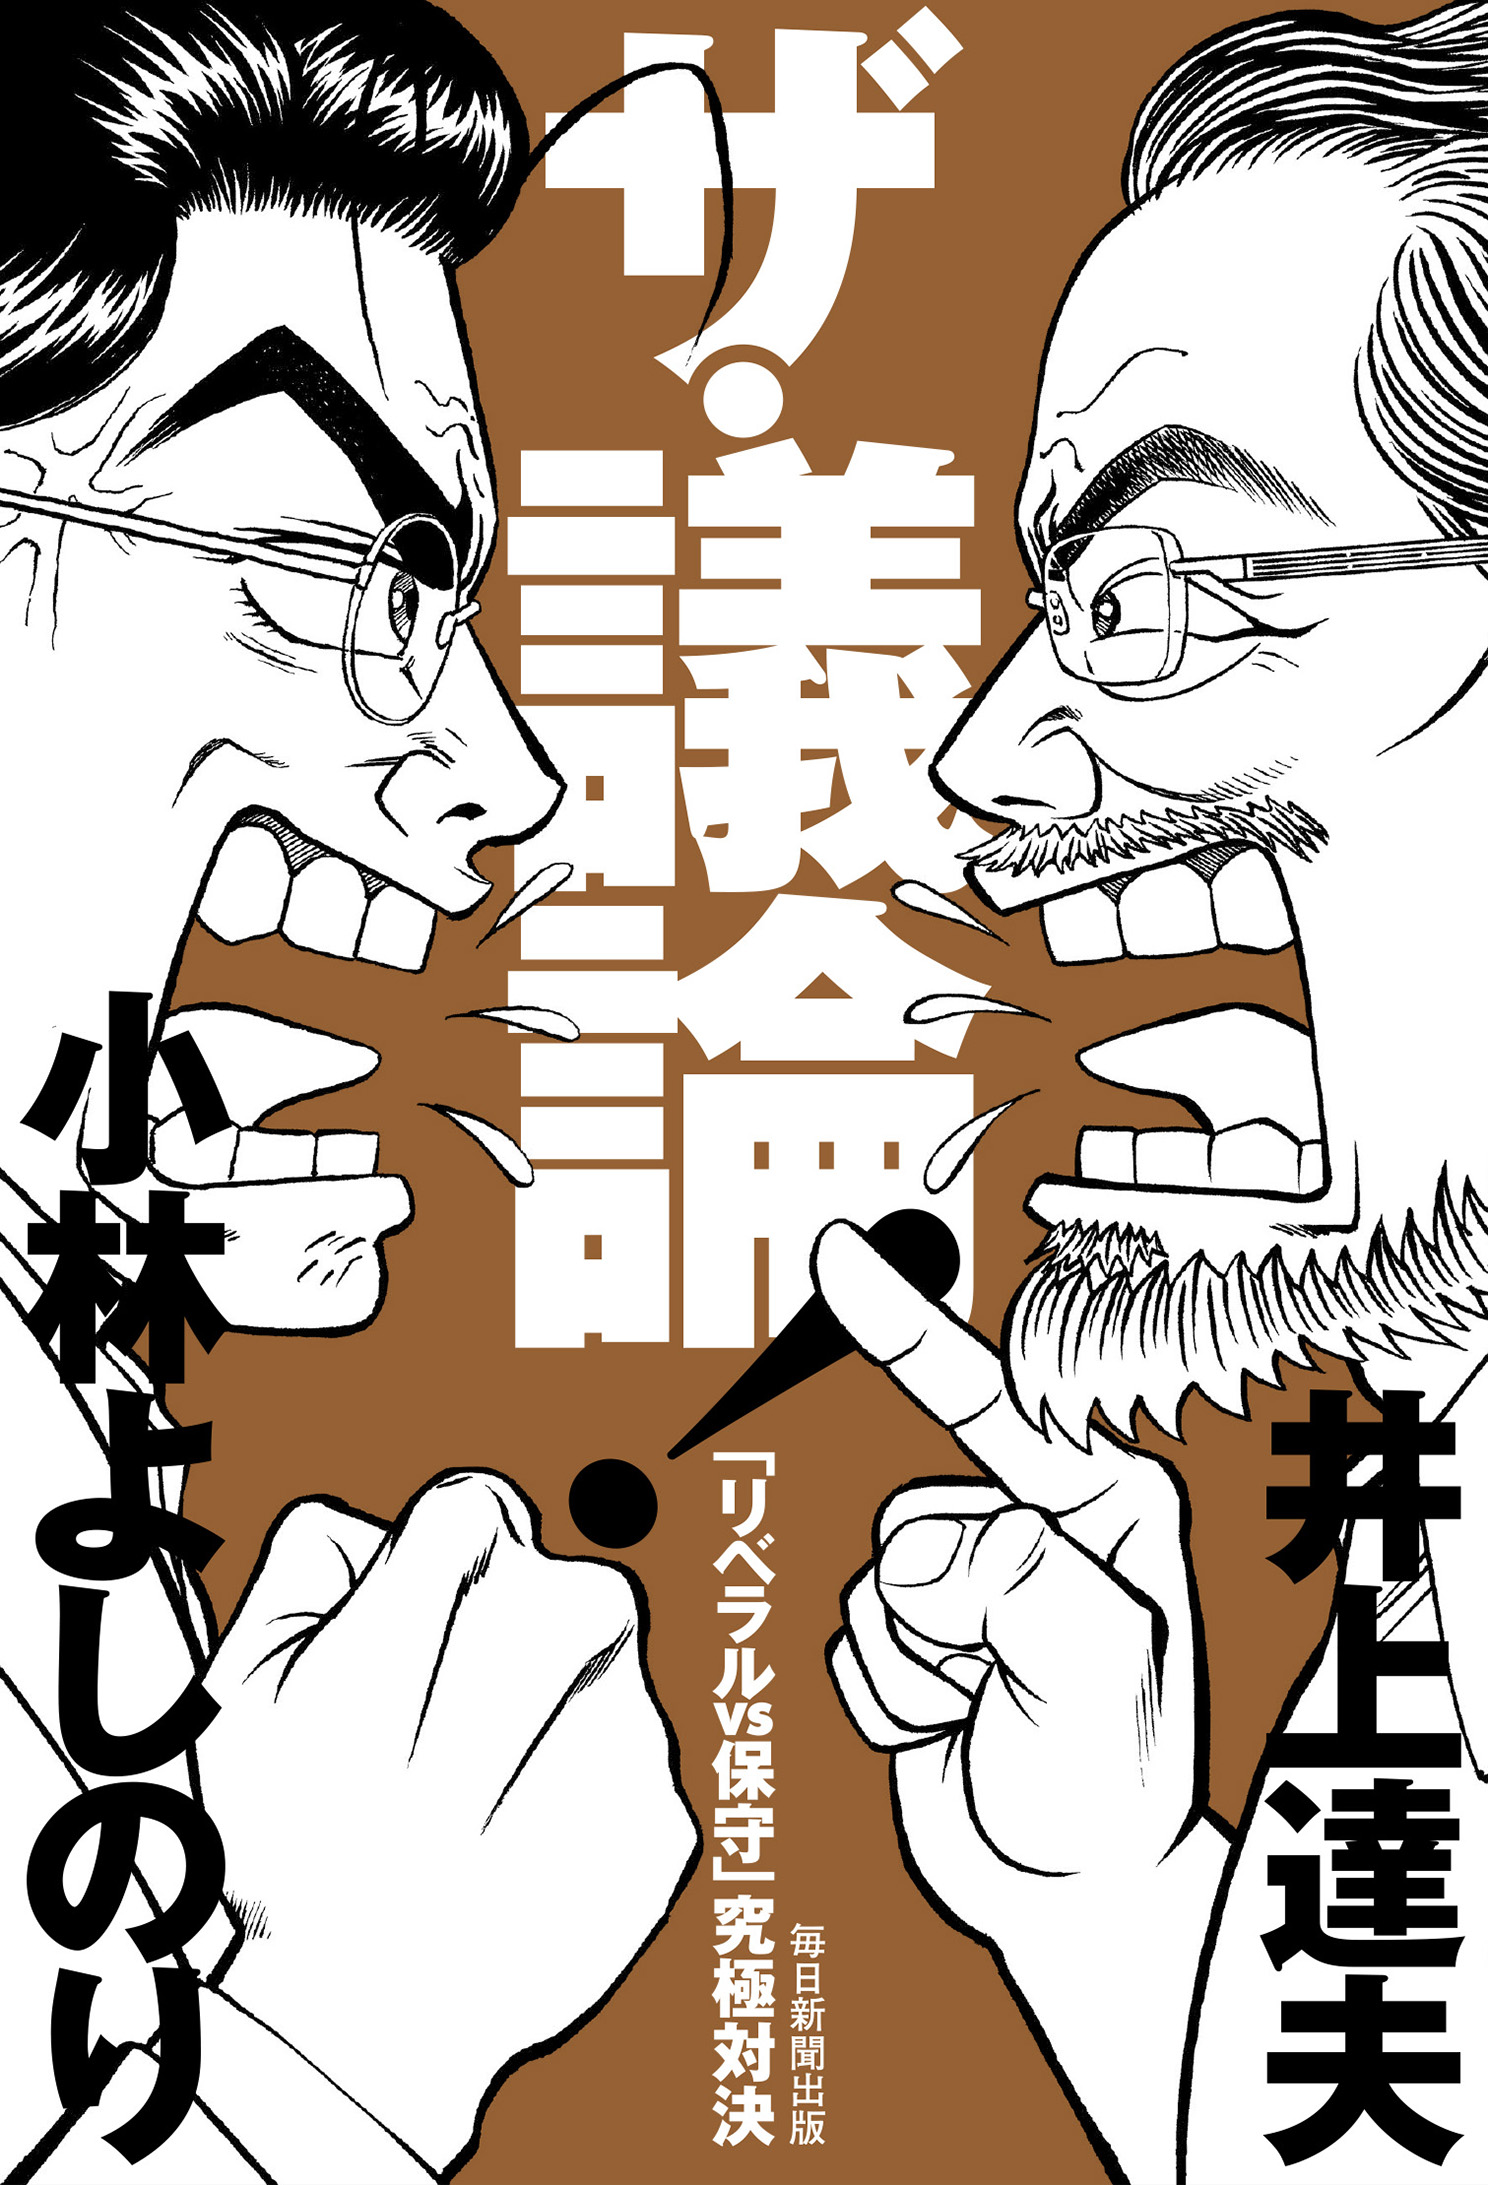 A cover with comic illustration of Inoue and Kobayashi debating